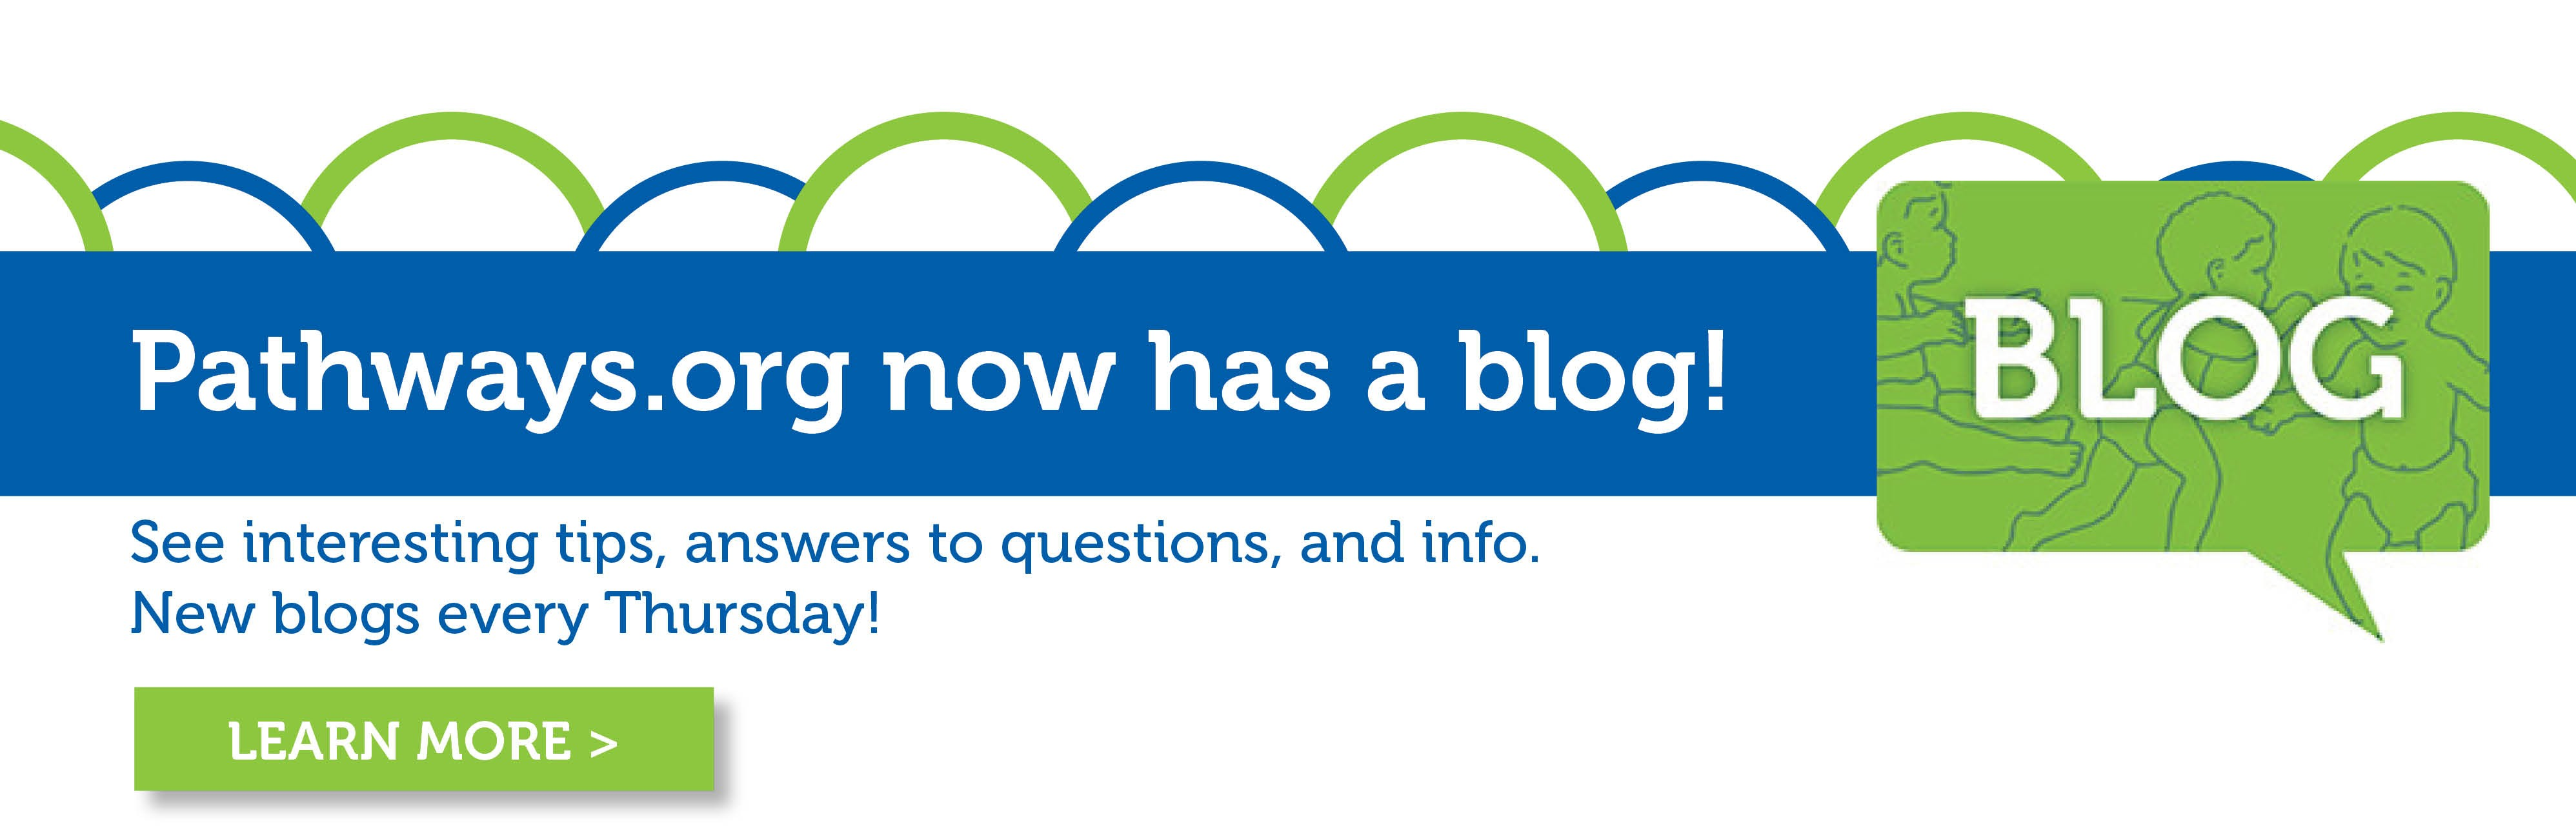 Read our blog to learn interesting tips and find answers to questions